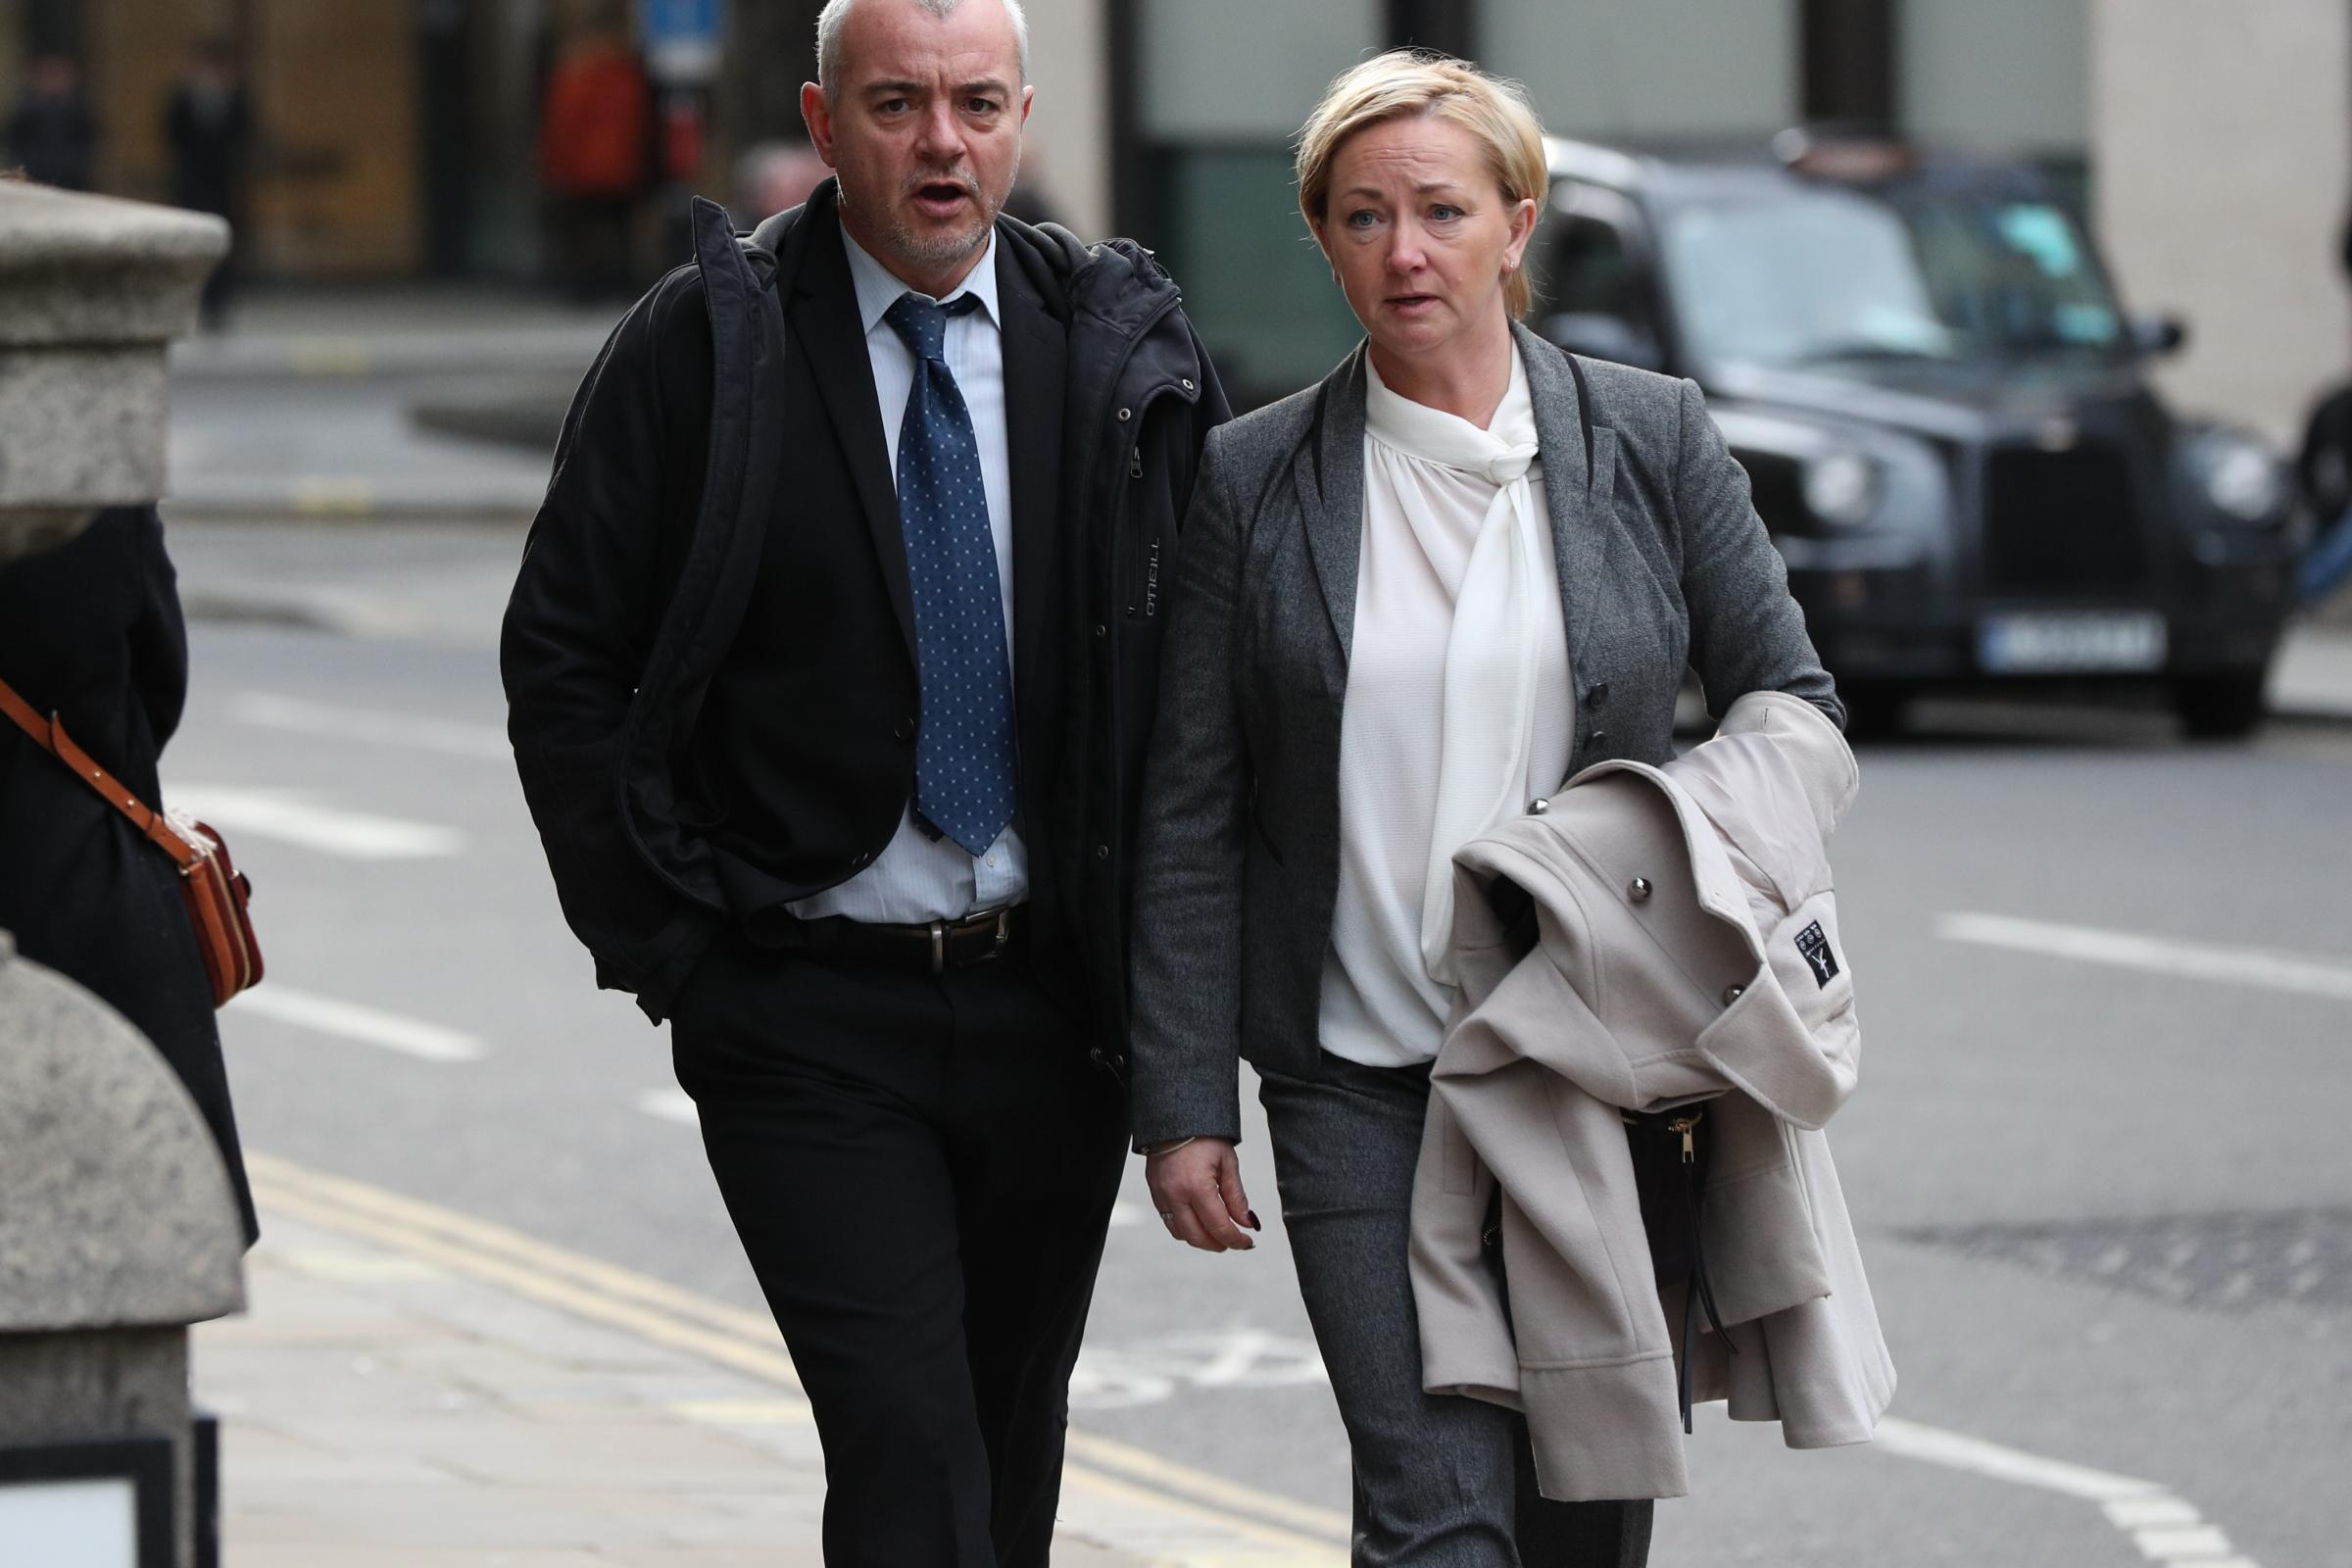 Detective constables Lee Pollard (left) and Sharon Patterson leaving the Old Bailey